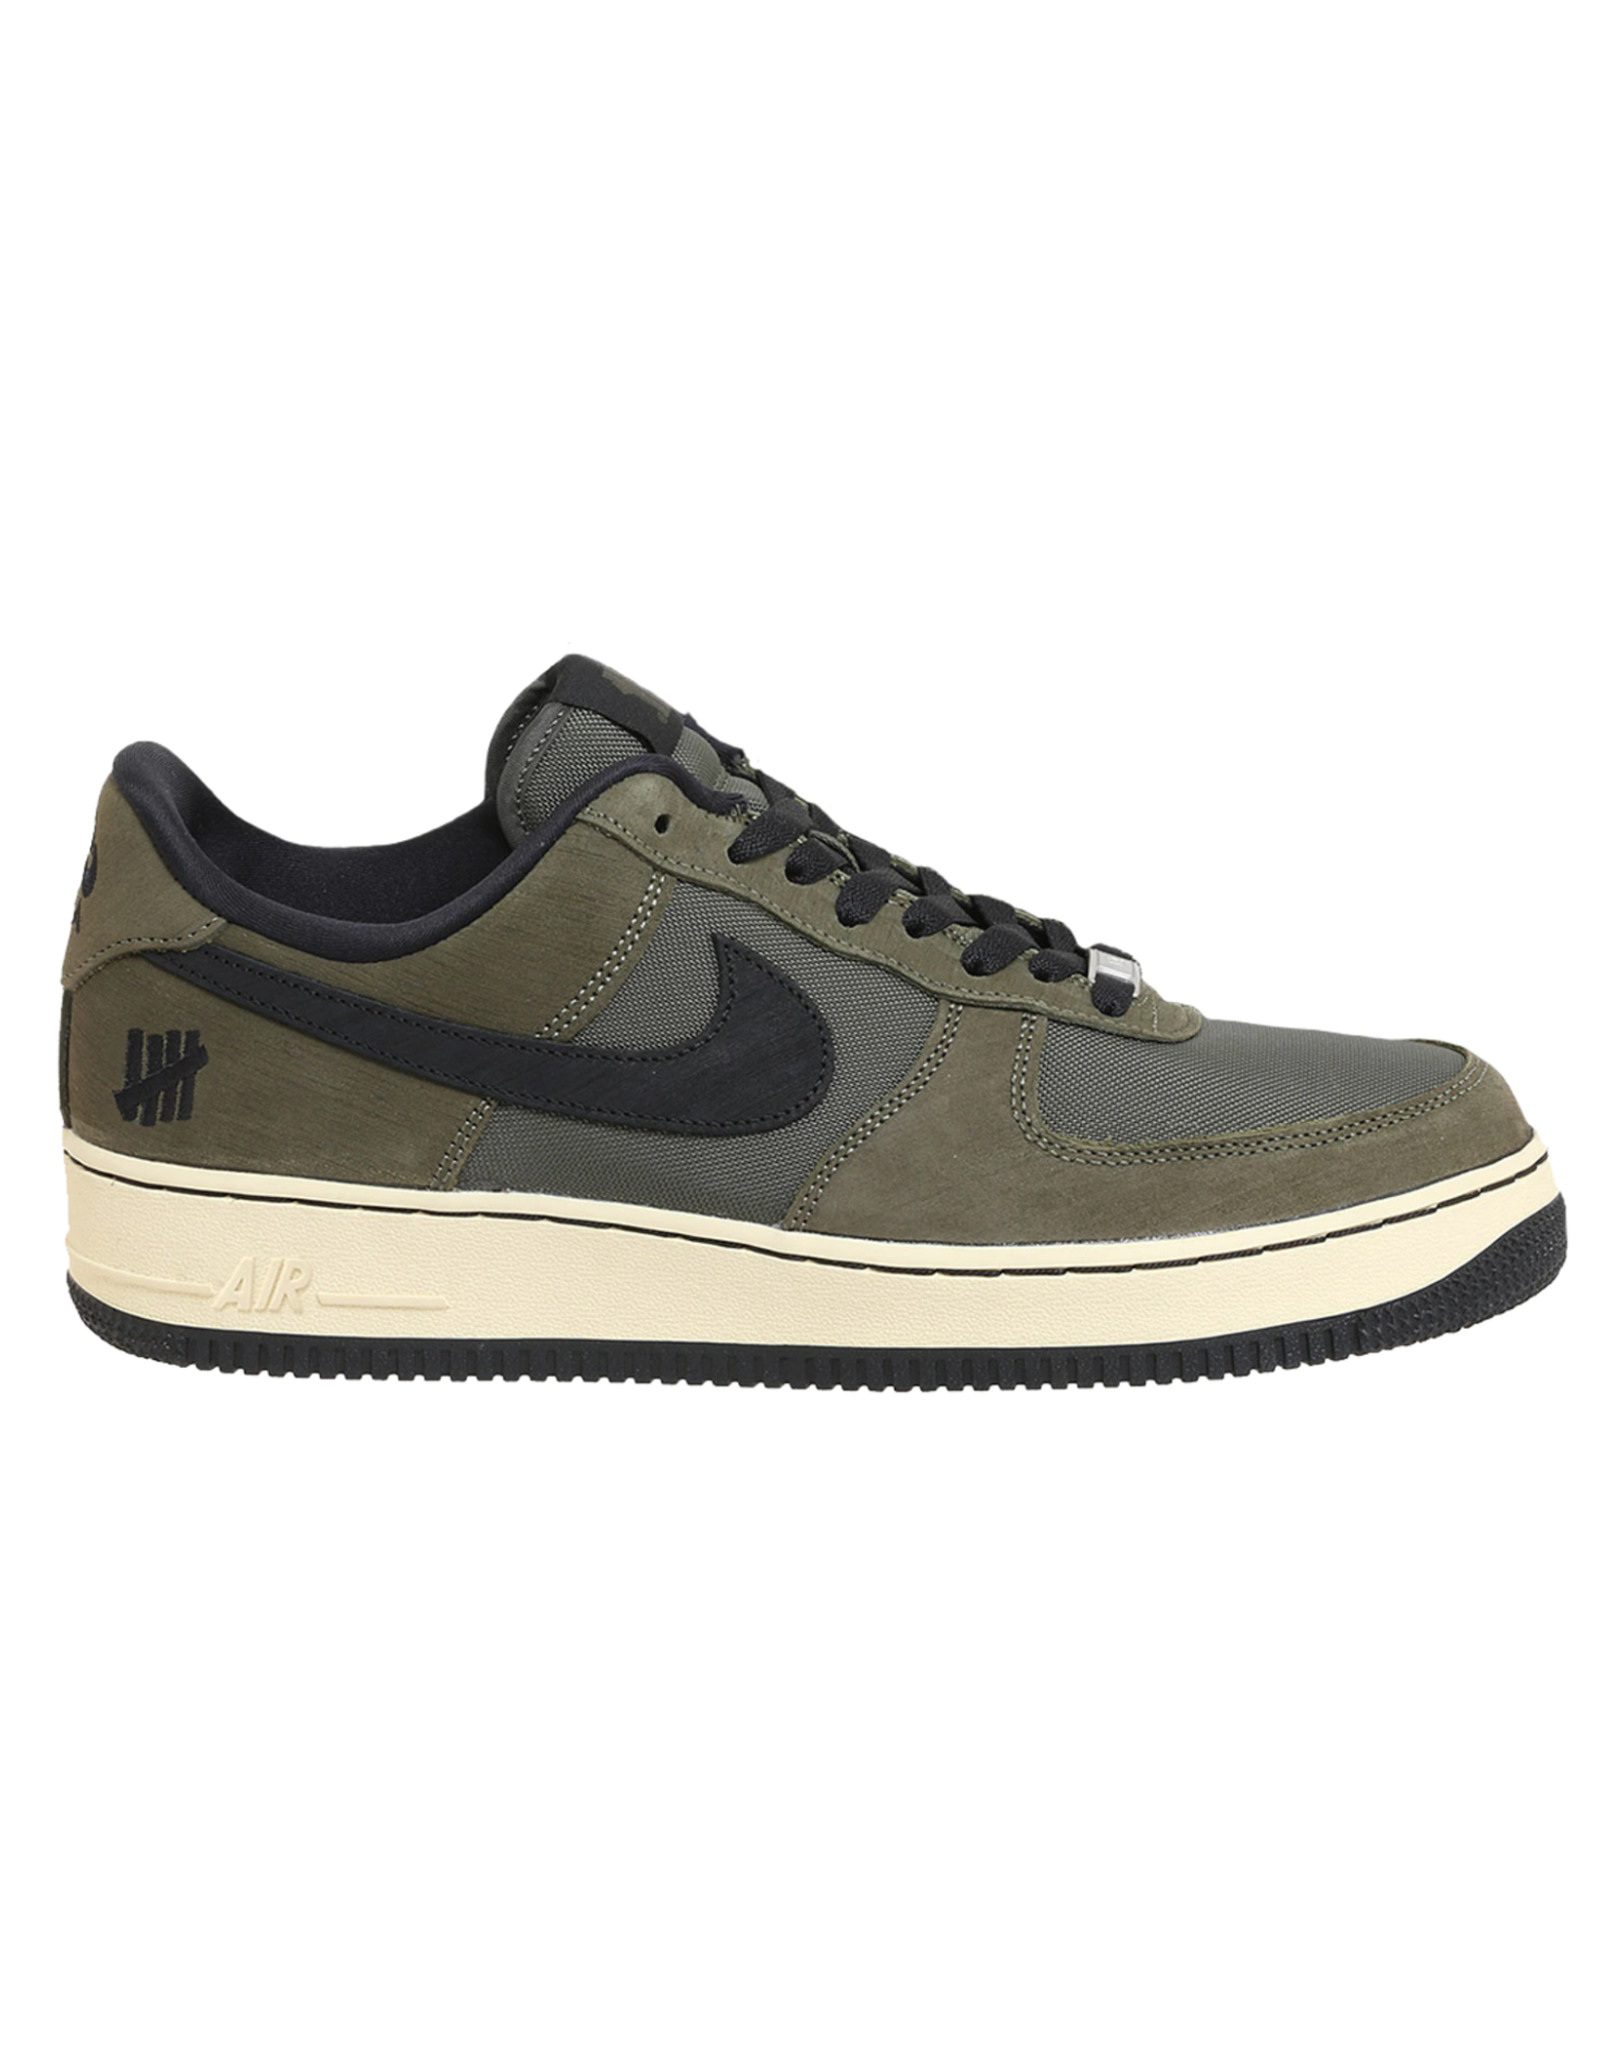 NIKE Nike Air Force 1 Low SP UNDEFEATED Ballistic Dunk vs. AF1